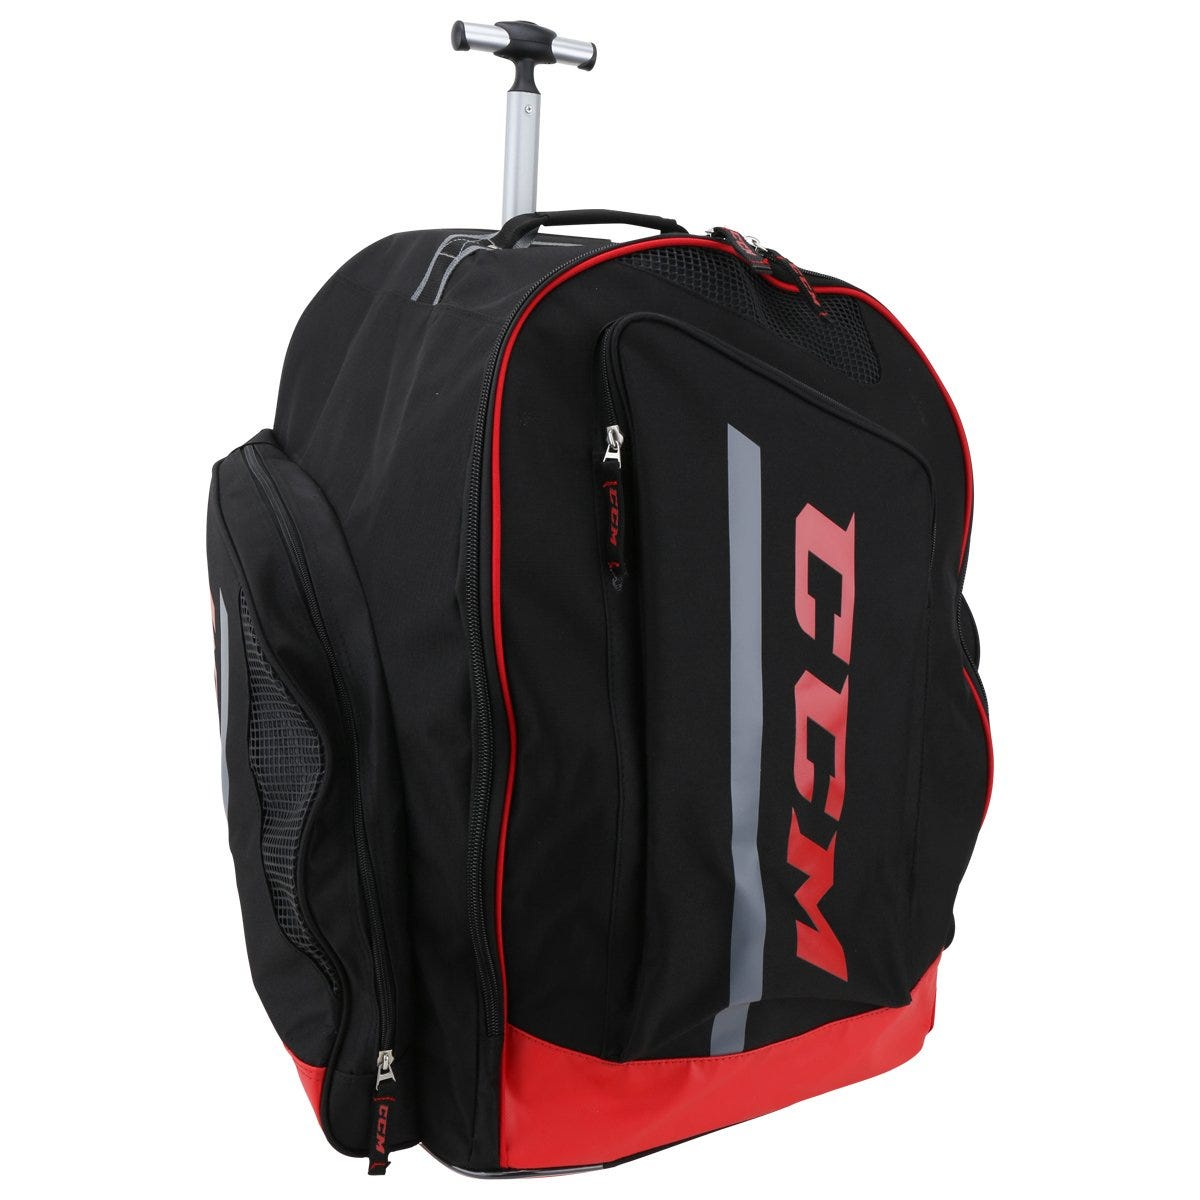 53c2a121509 SKU-MS1337766 CCM 280 17in. Wheeled Equipment Backpack from Hockey ...